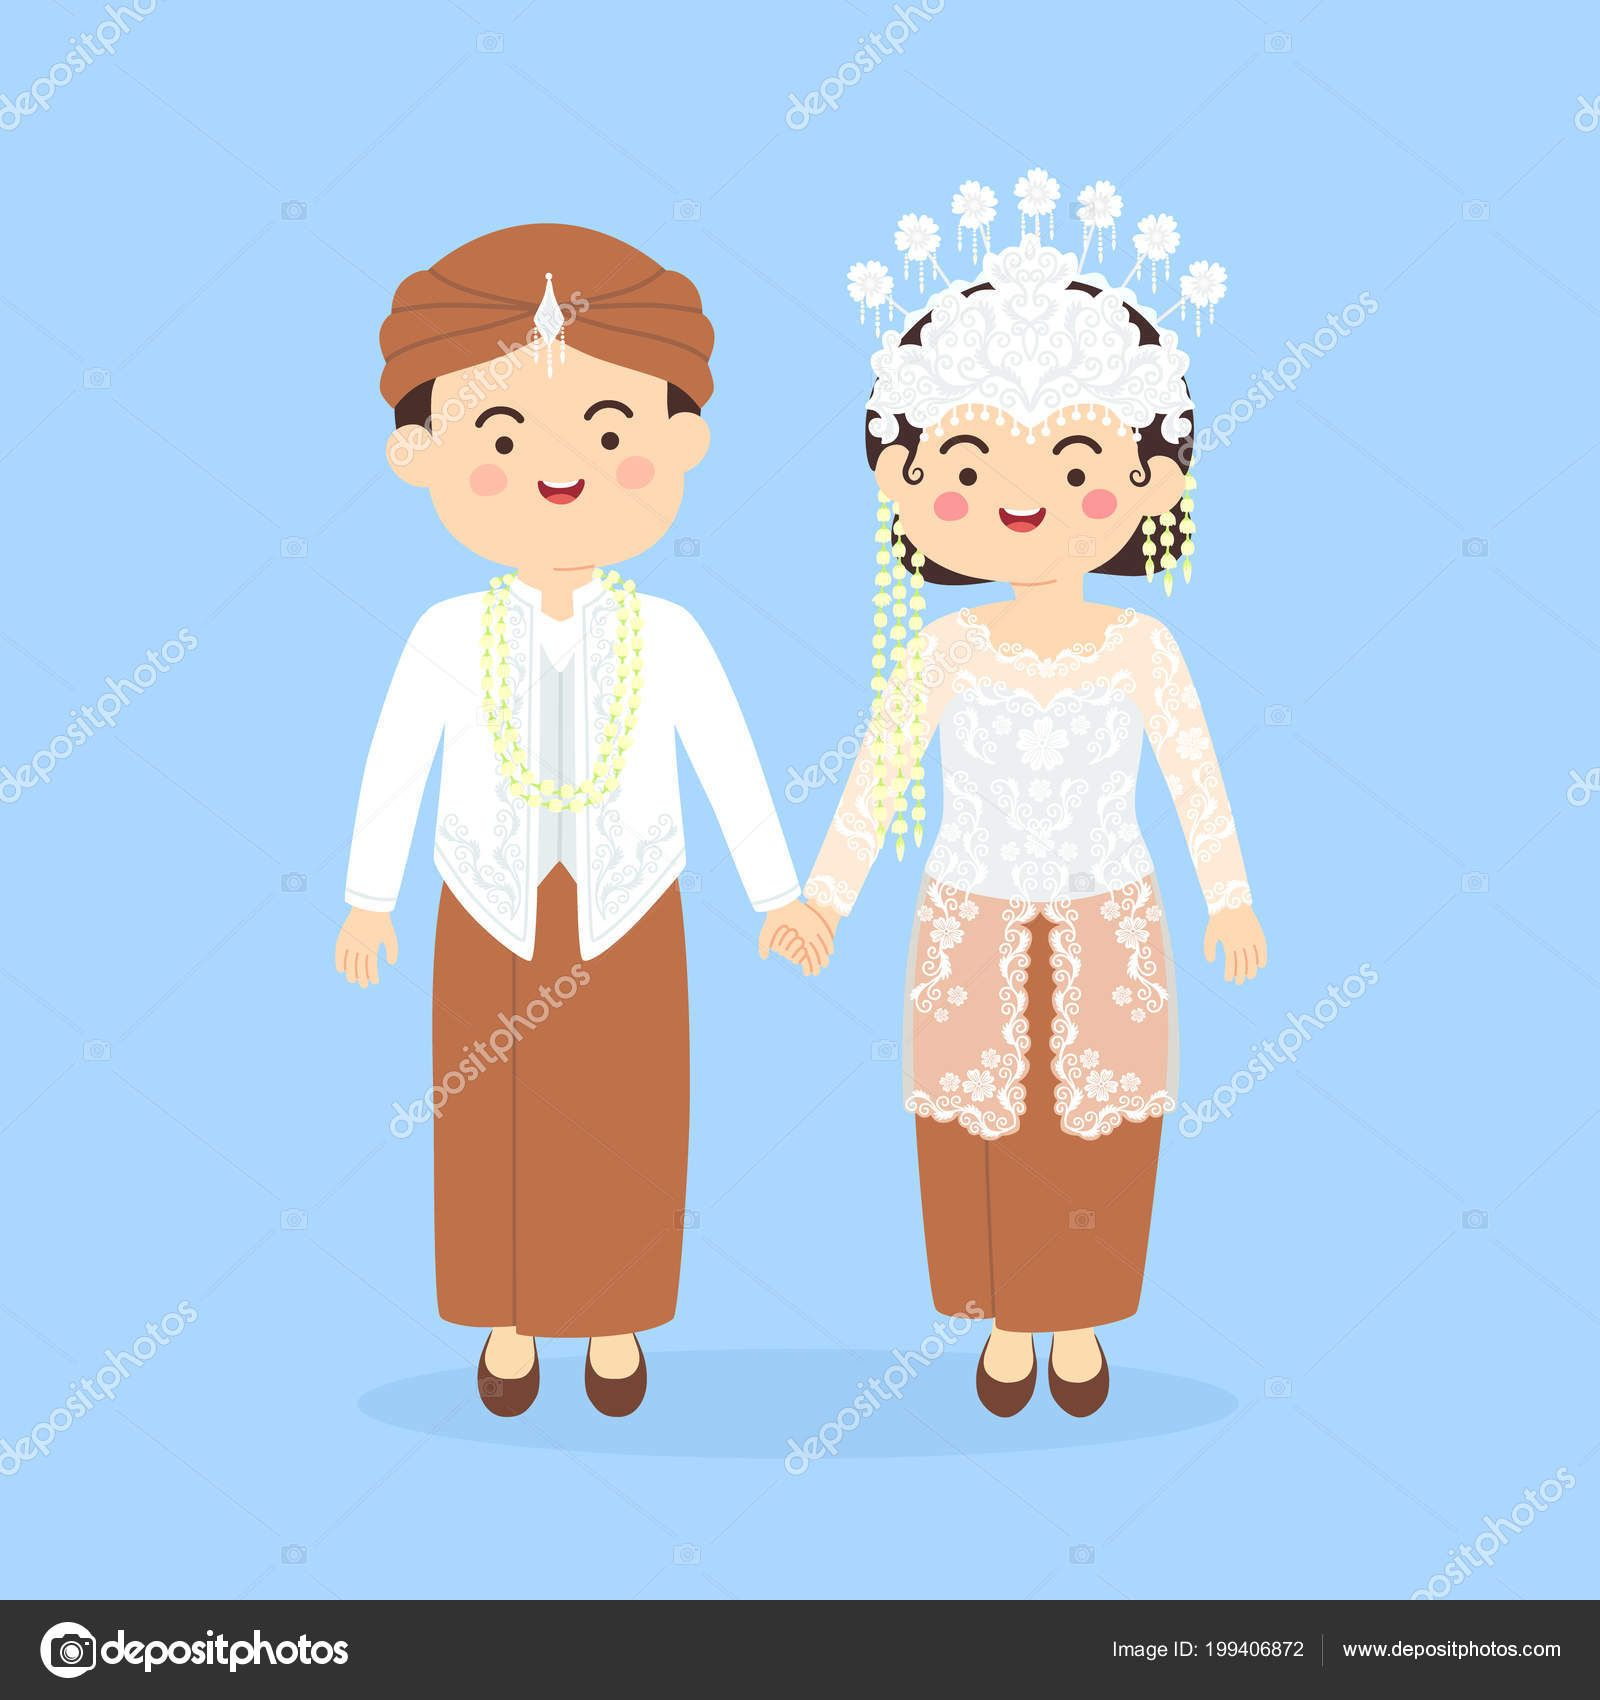 Download Royalty Free West Java Sundanese Indonesia Wedding